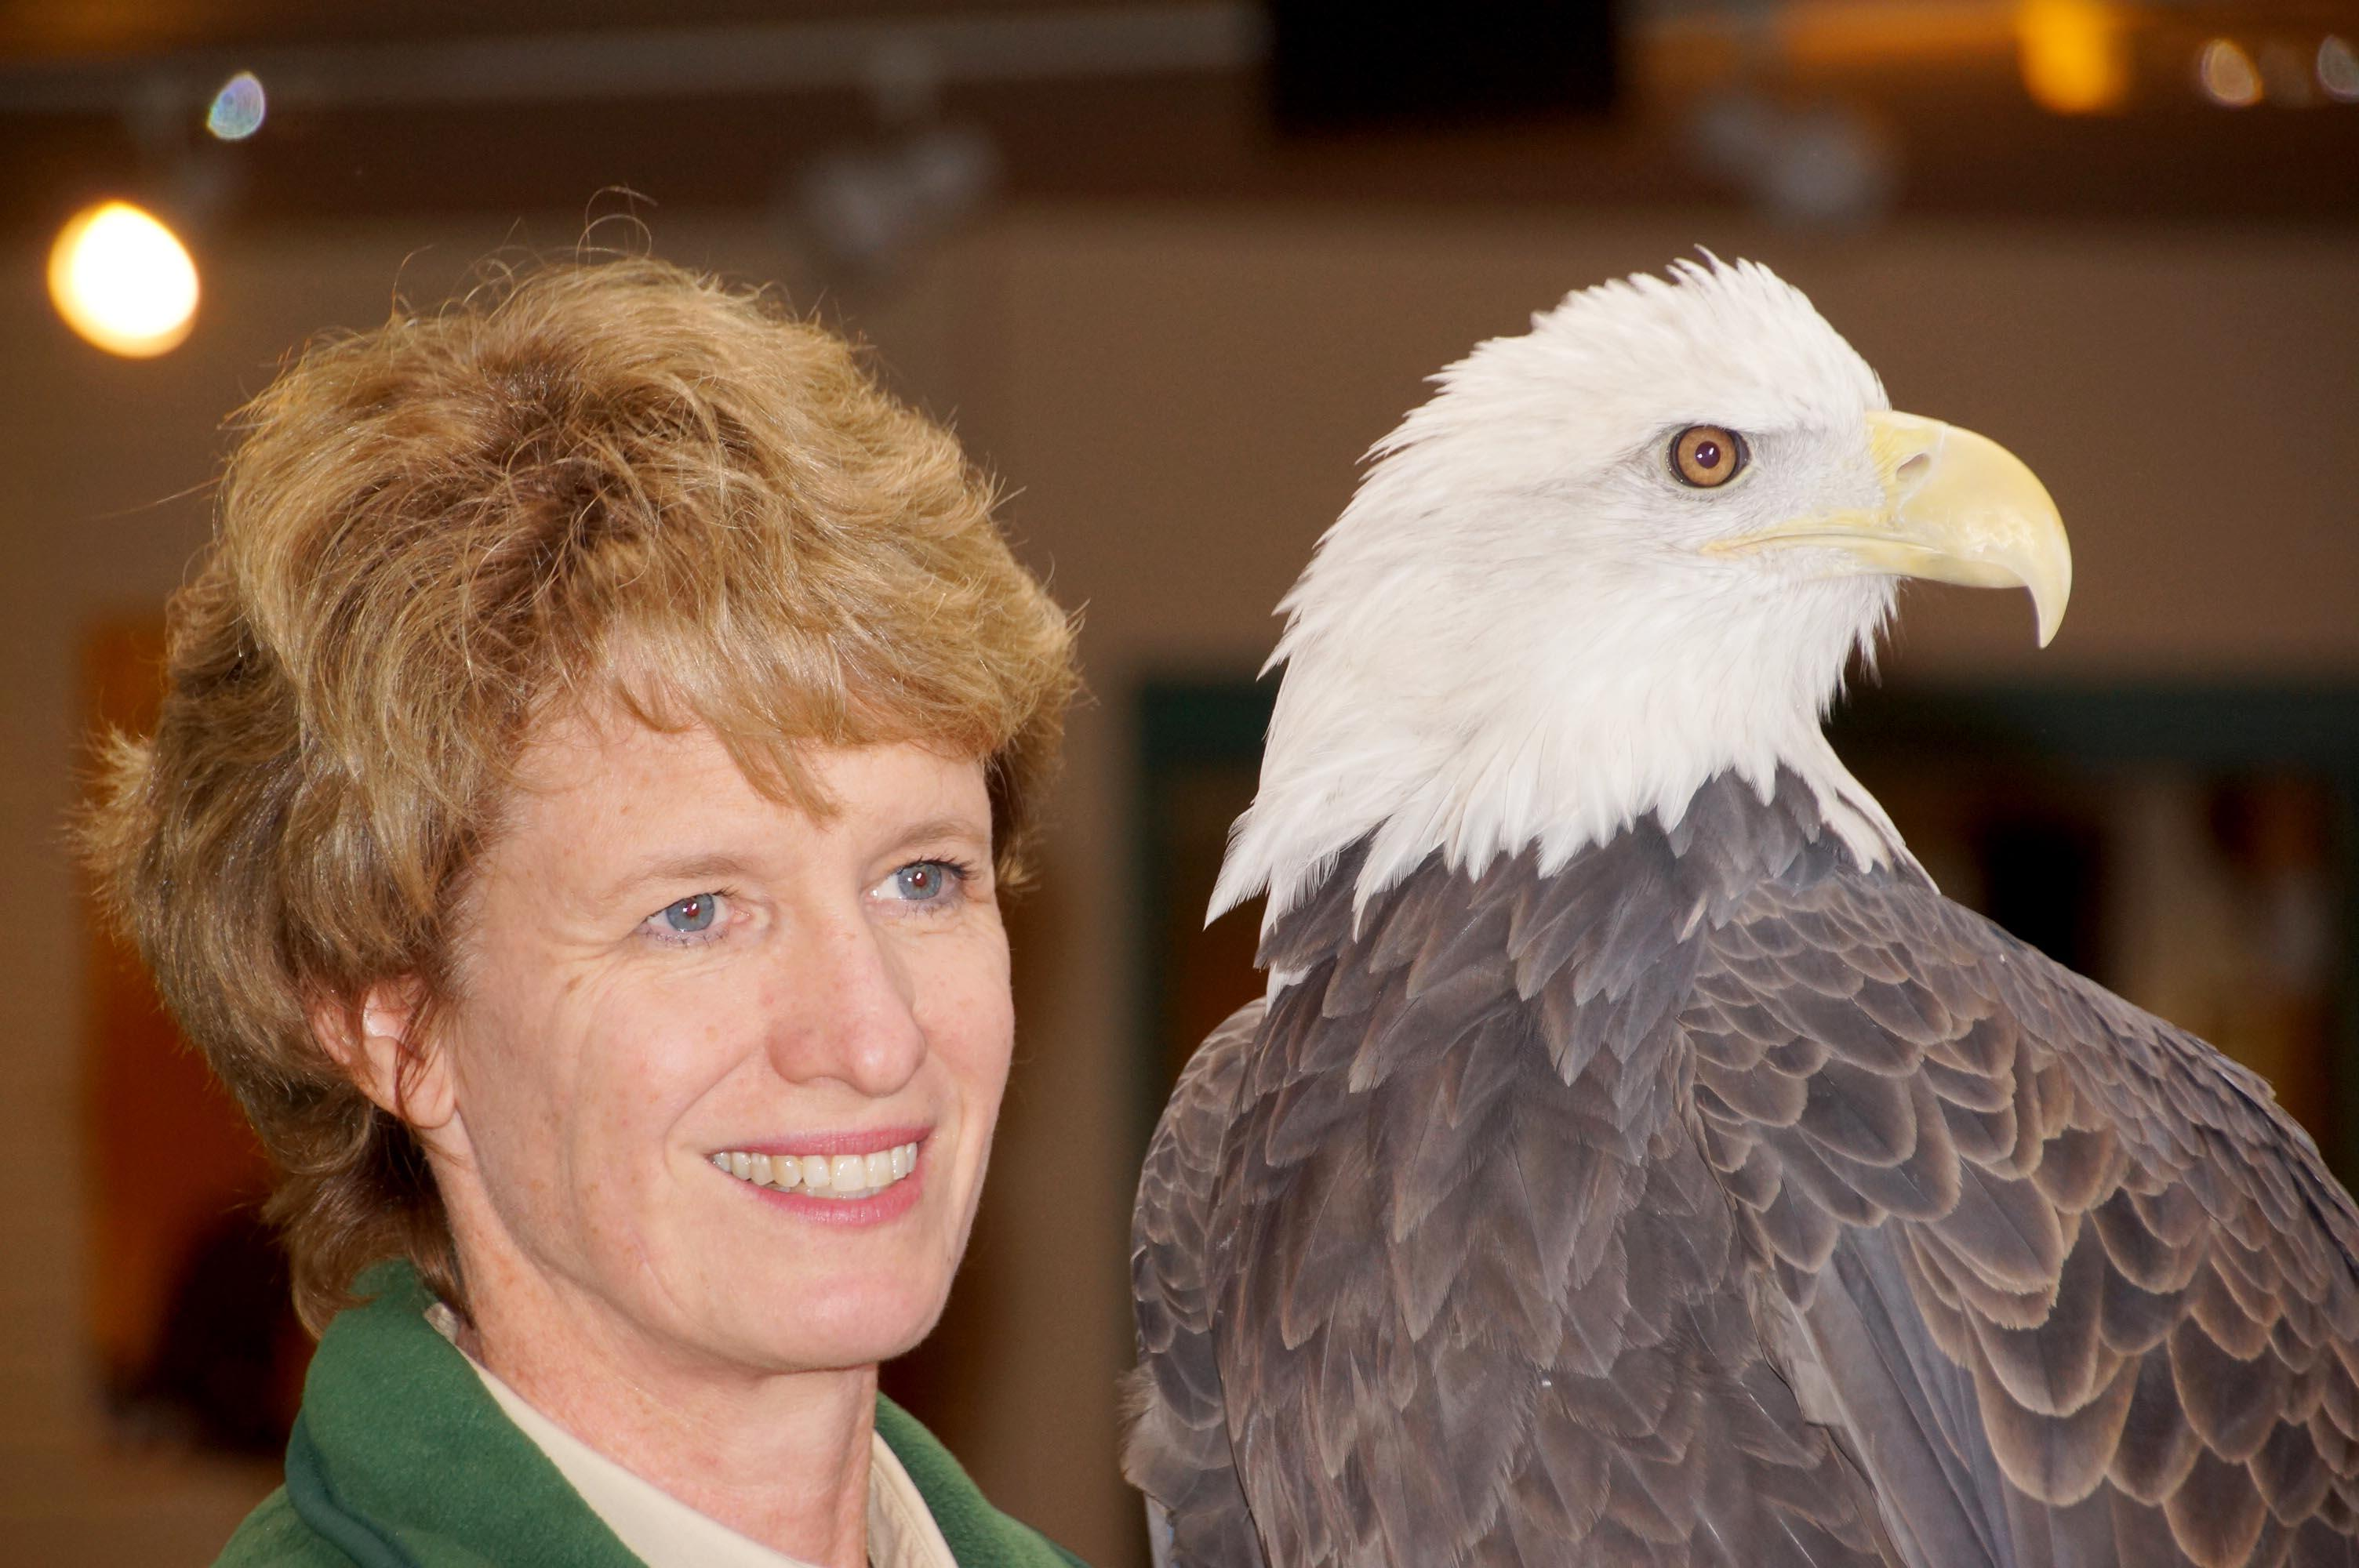 Julia Ponder with an eagle